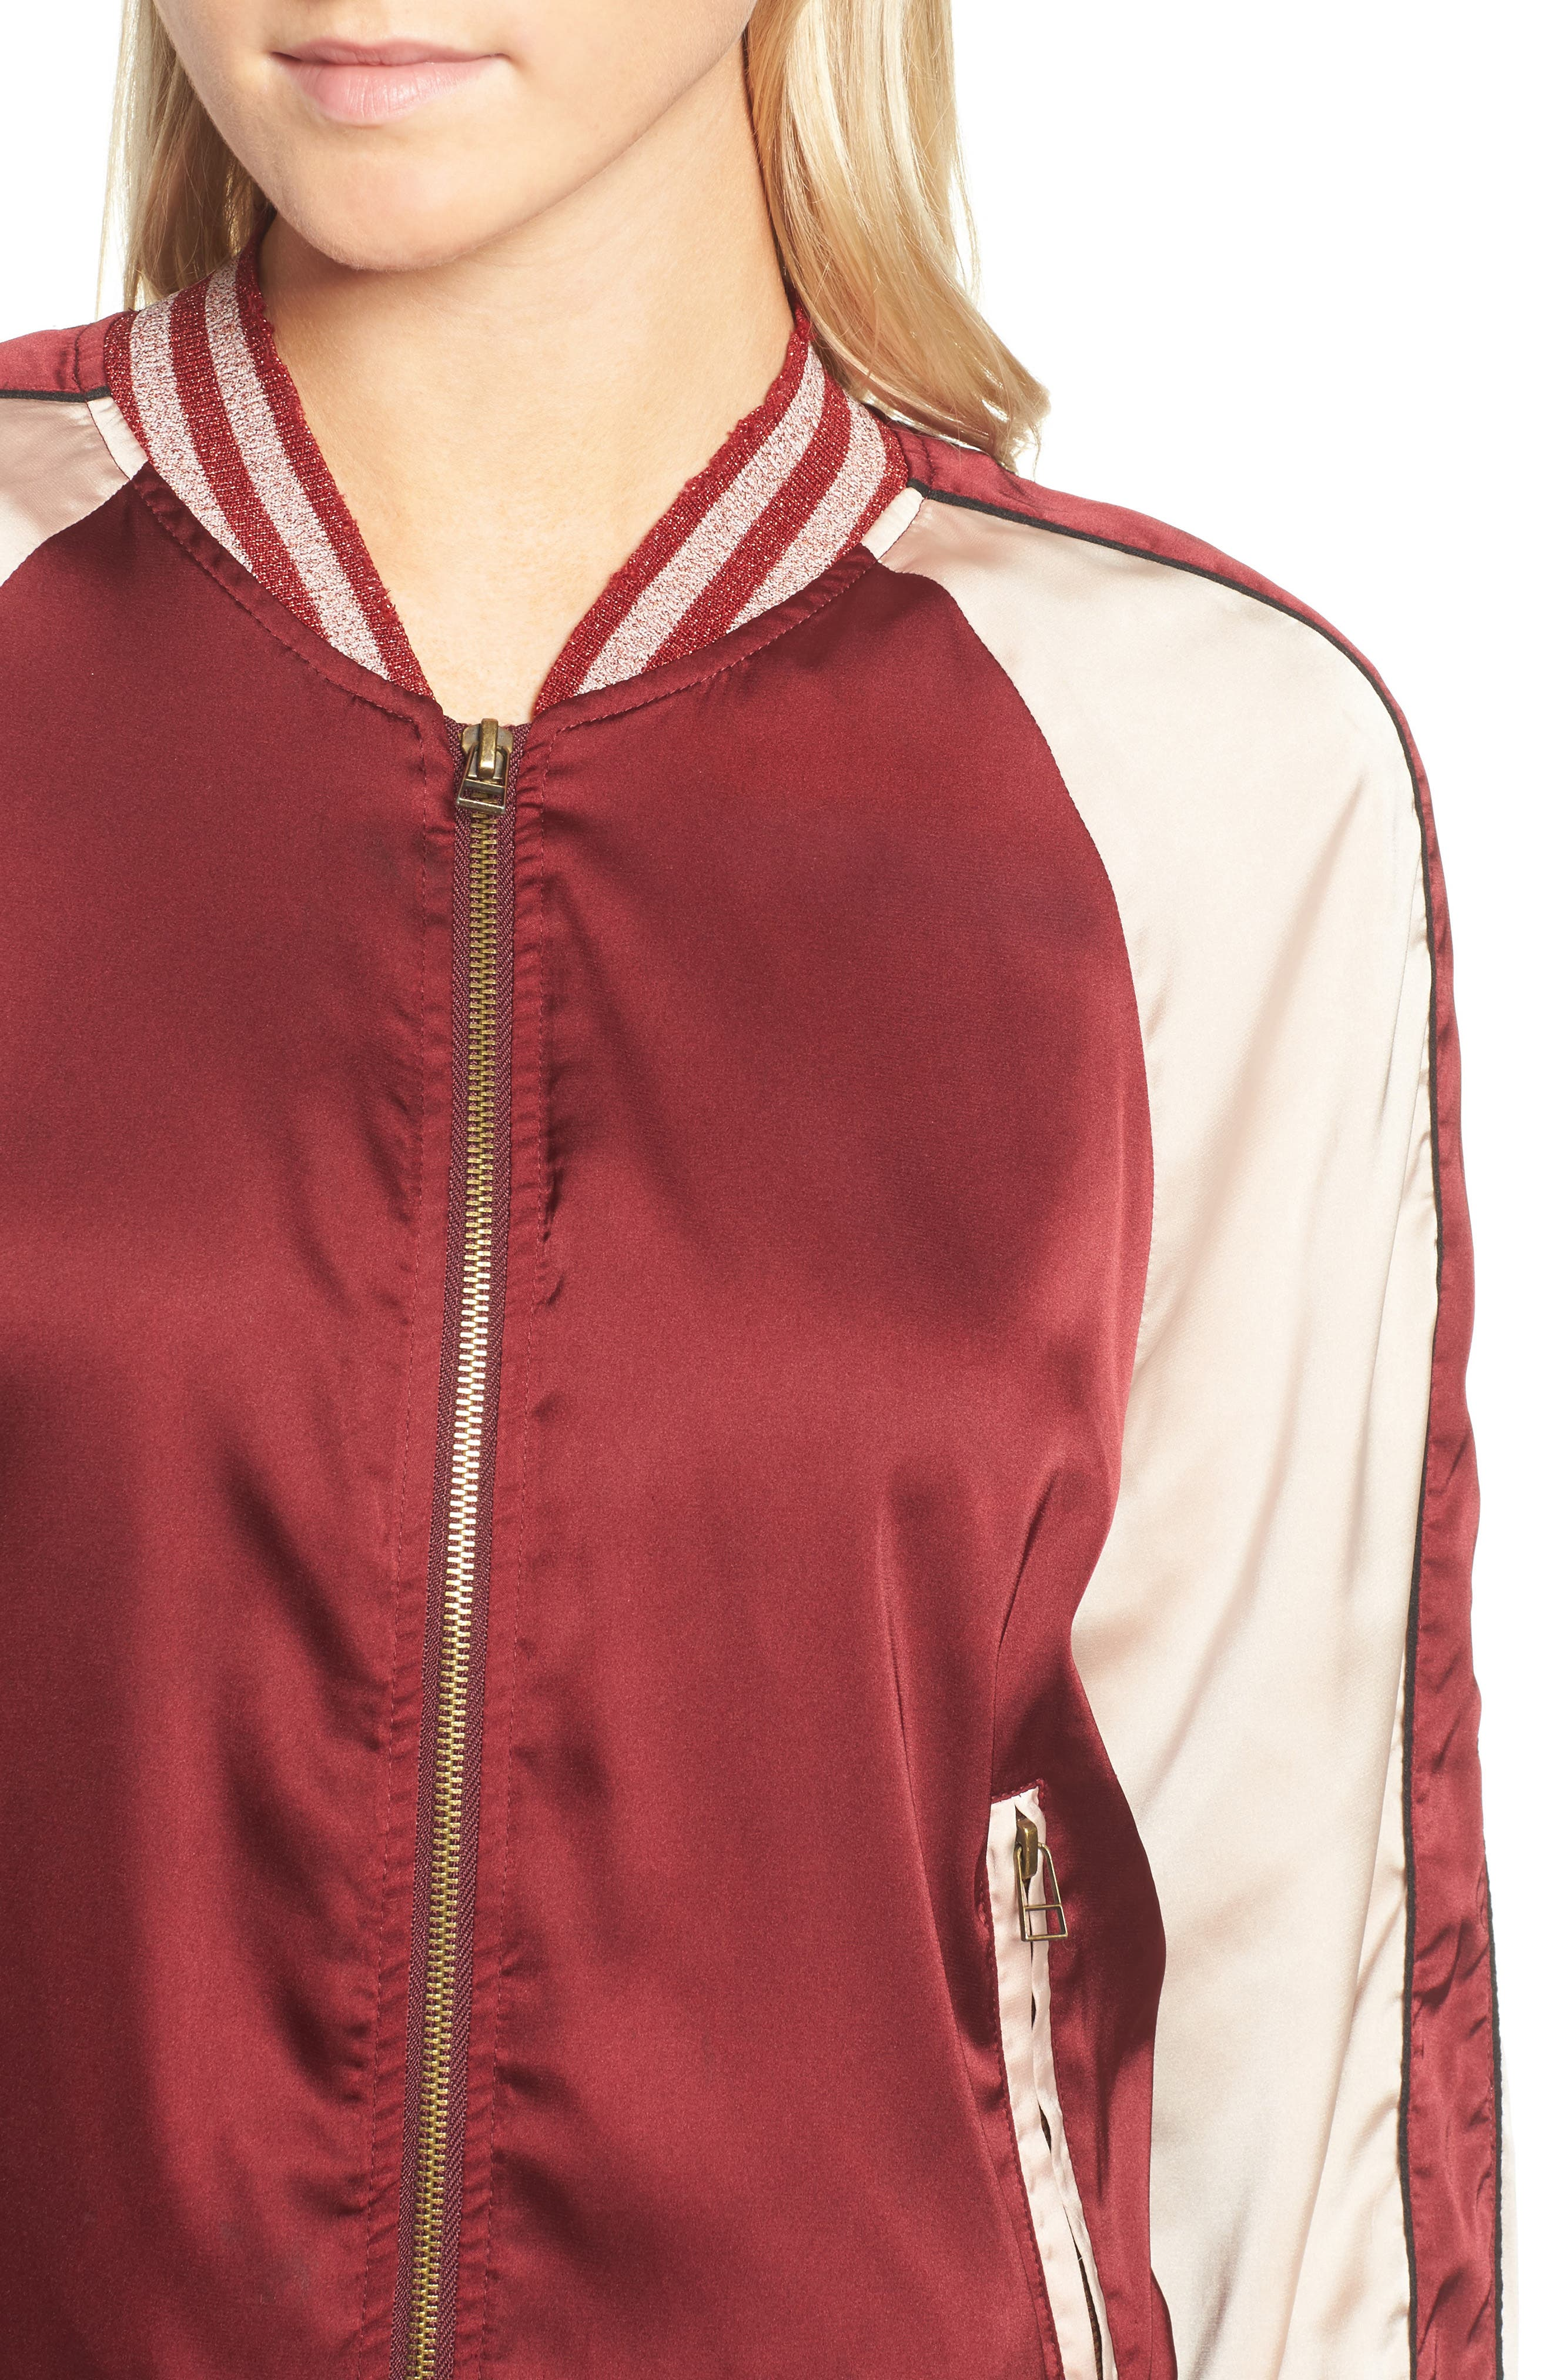 Los Feliz Tigers Bomber Jacket,                             Alternate thumbnail 4, color,                             Maroon